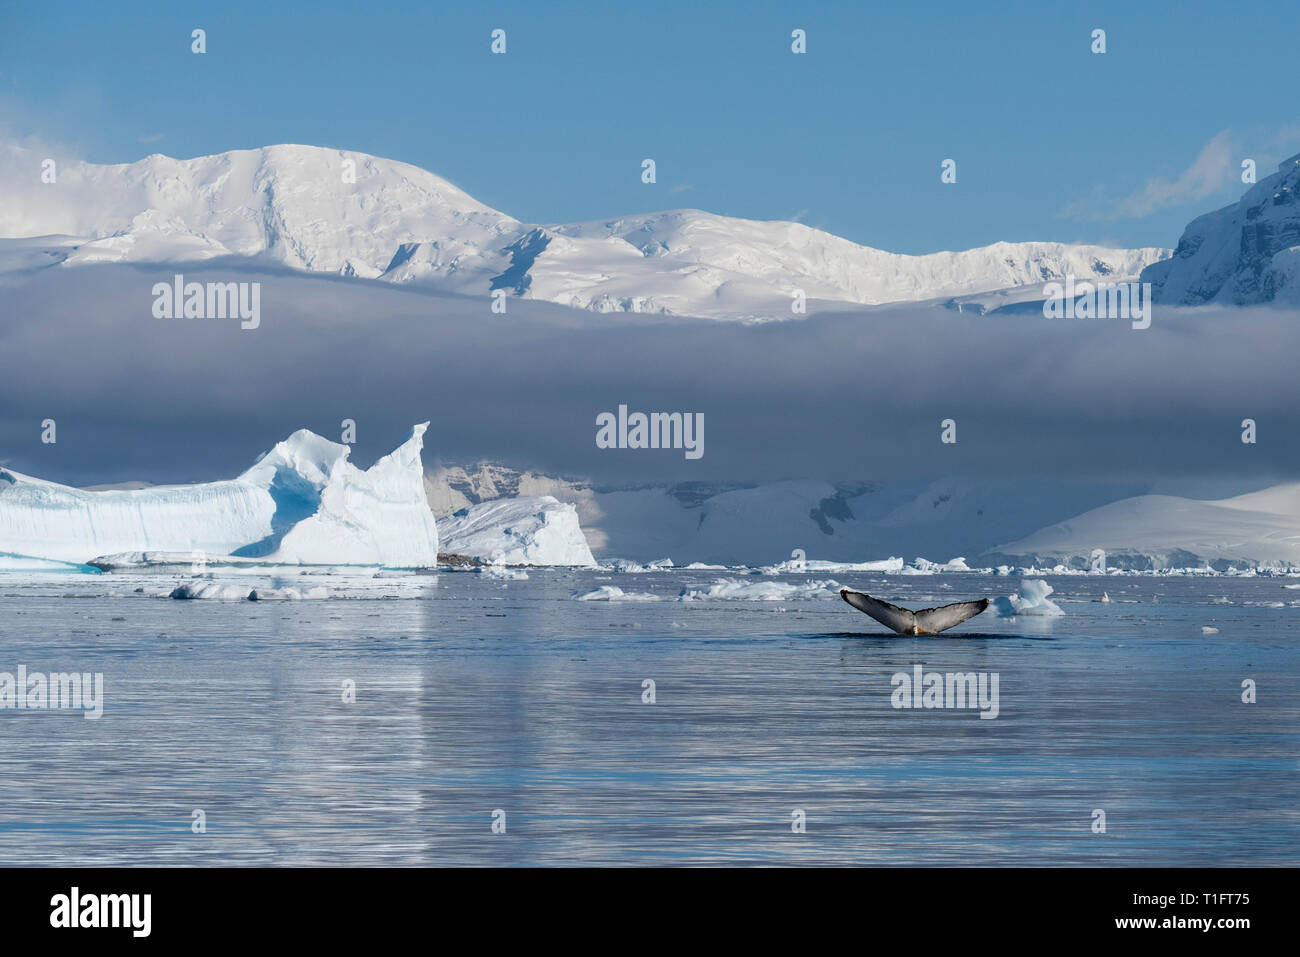 Antarctica. Cuverville Island located within the Errera Channel between Ronge Island and the Arctowski Peninsula. Humpback whales. Stock Photo